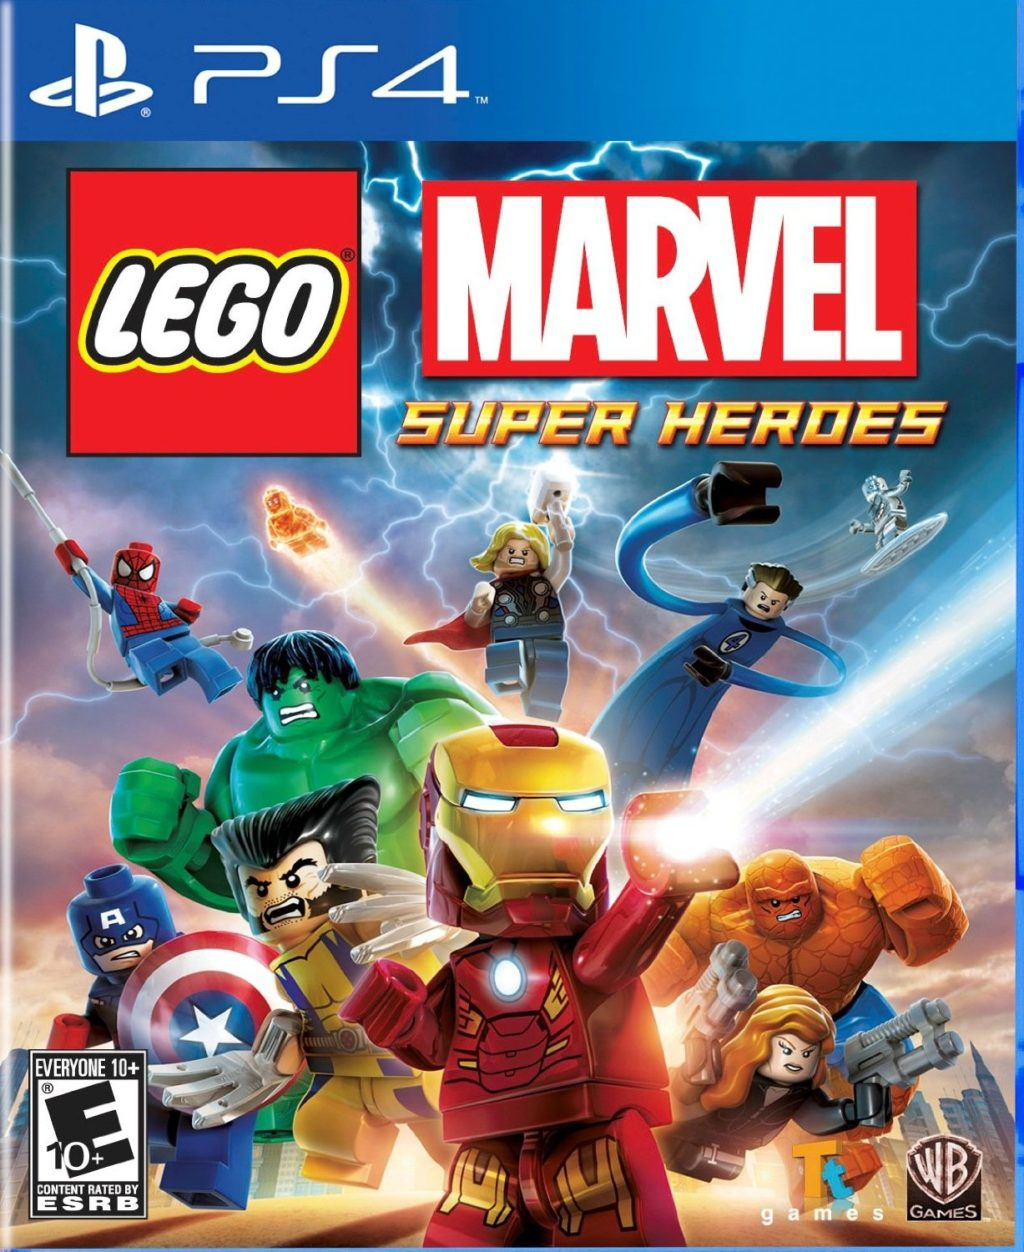 Lego Marvel Superheroes 1024x1252 - 9 Best Lego Video Games